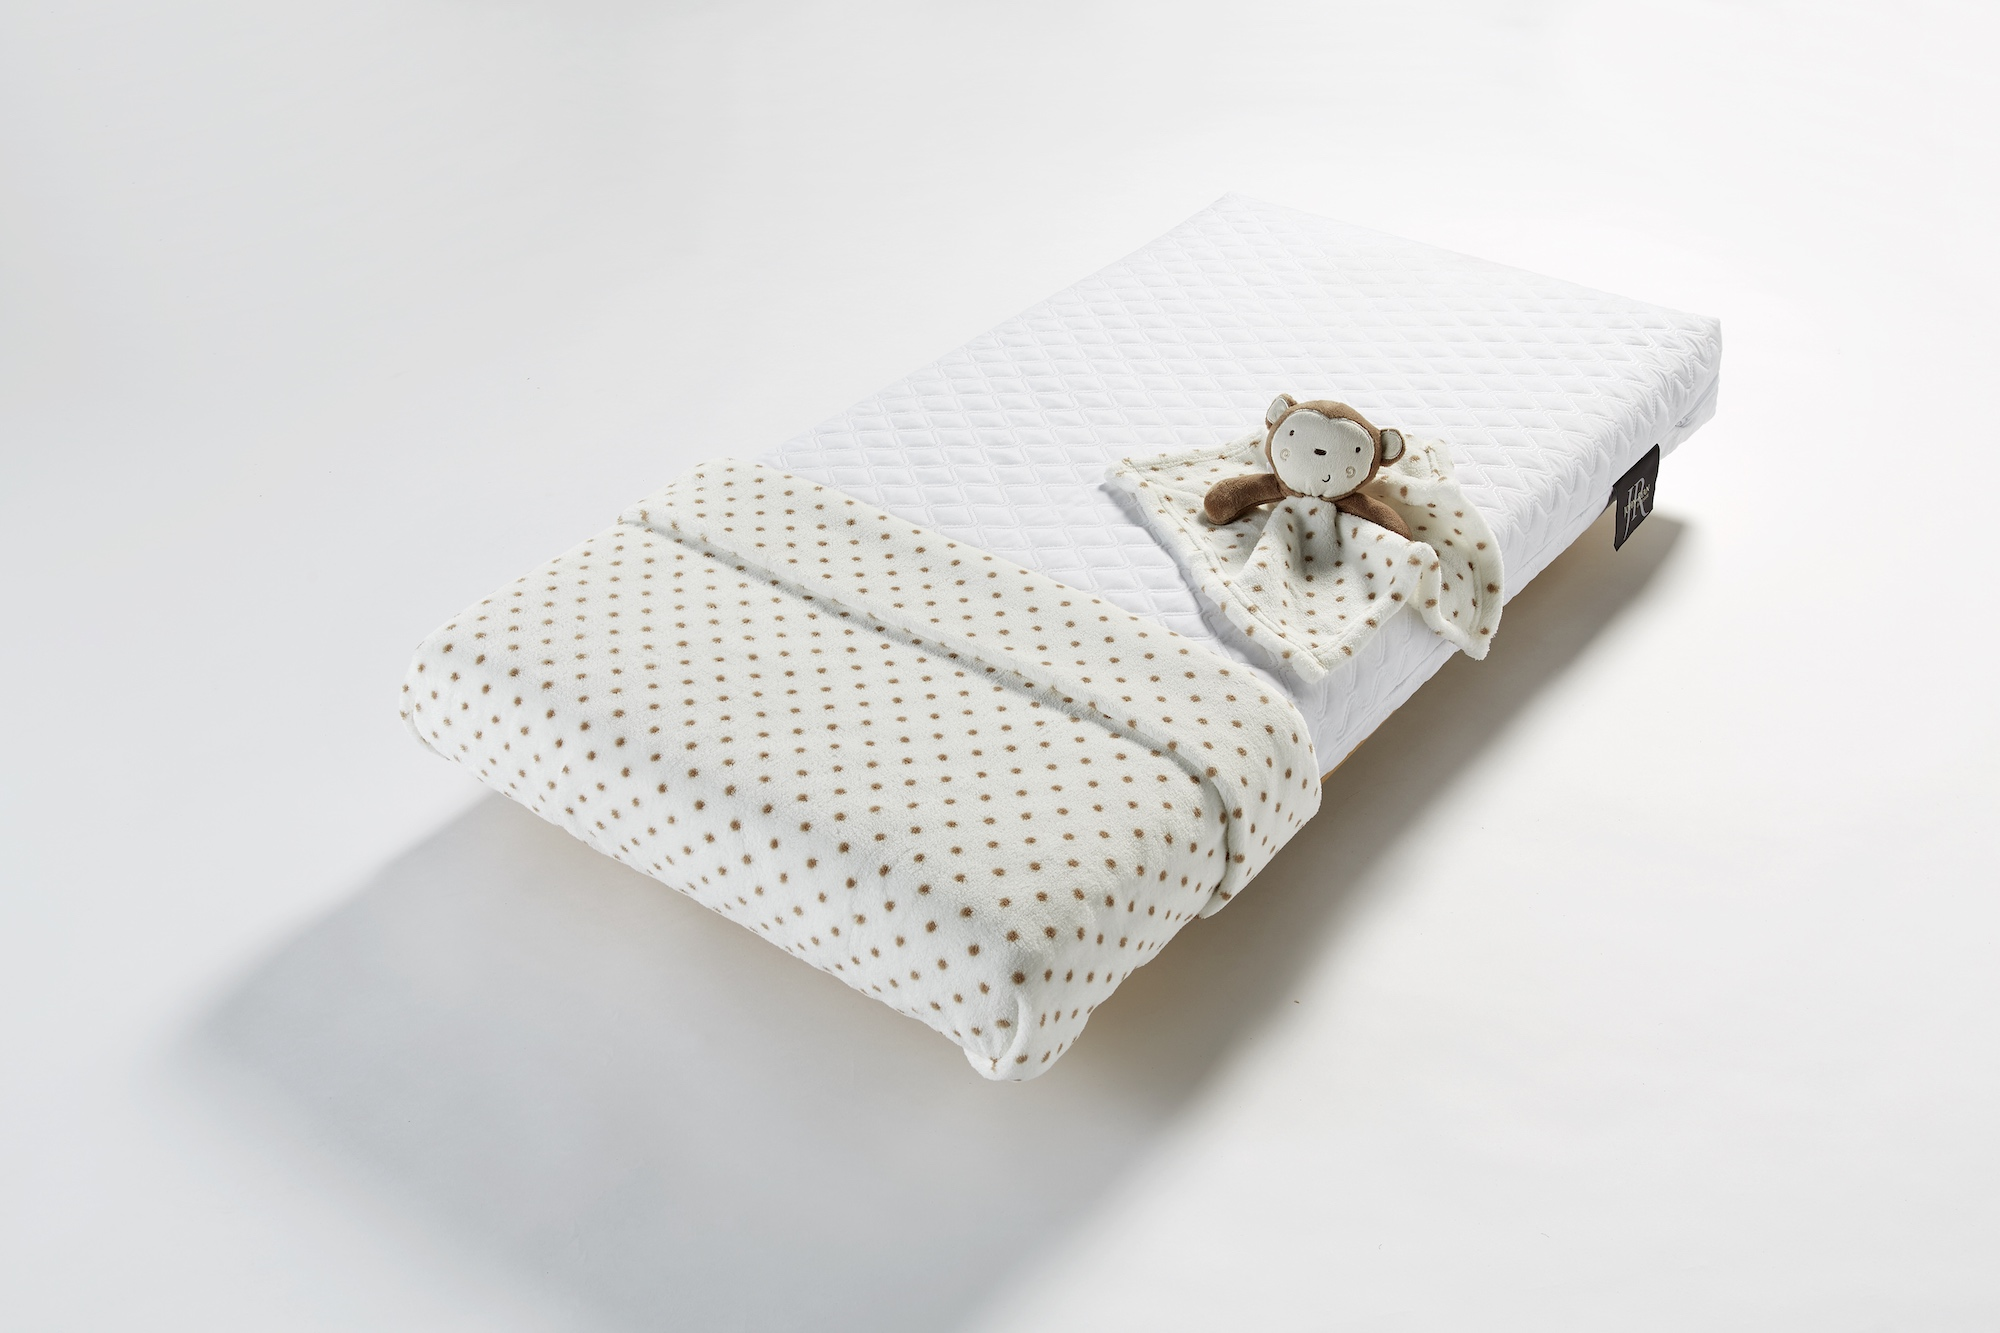 John Ryan By Design Cot mattress with polka dot blanket